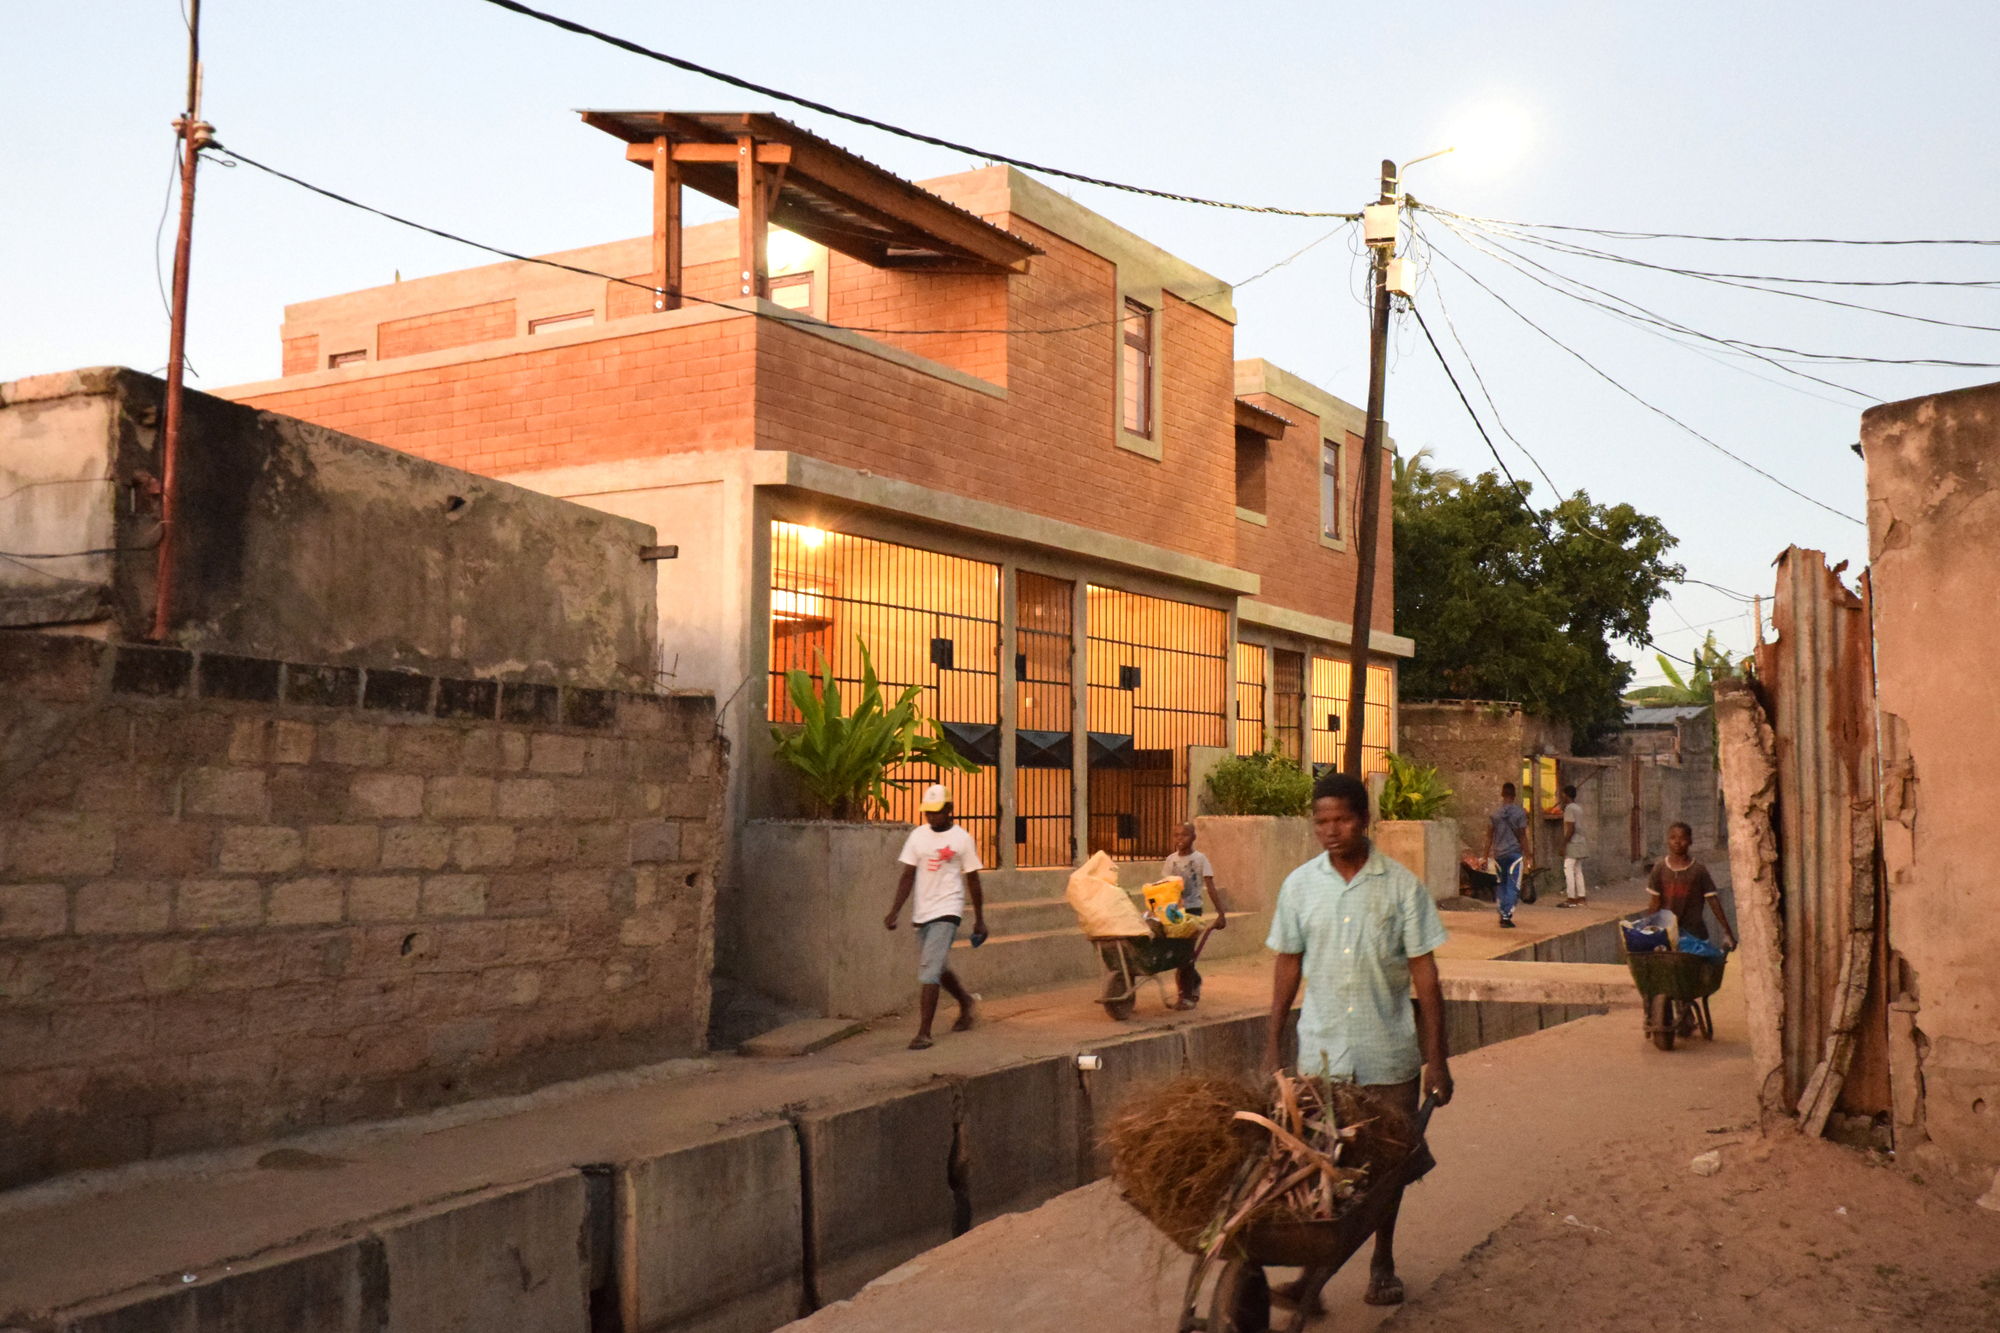 Contemporary Mozambique: 4 Projects that Respond to Present Challenges